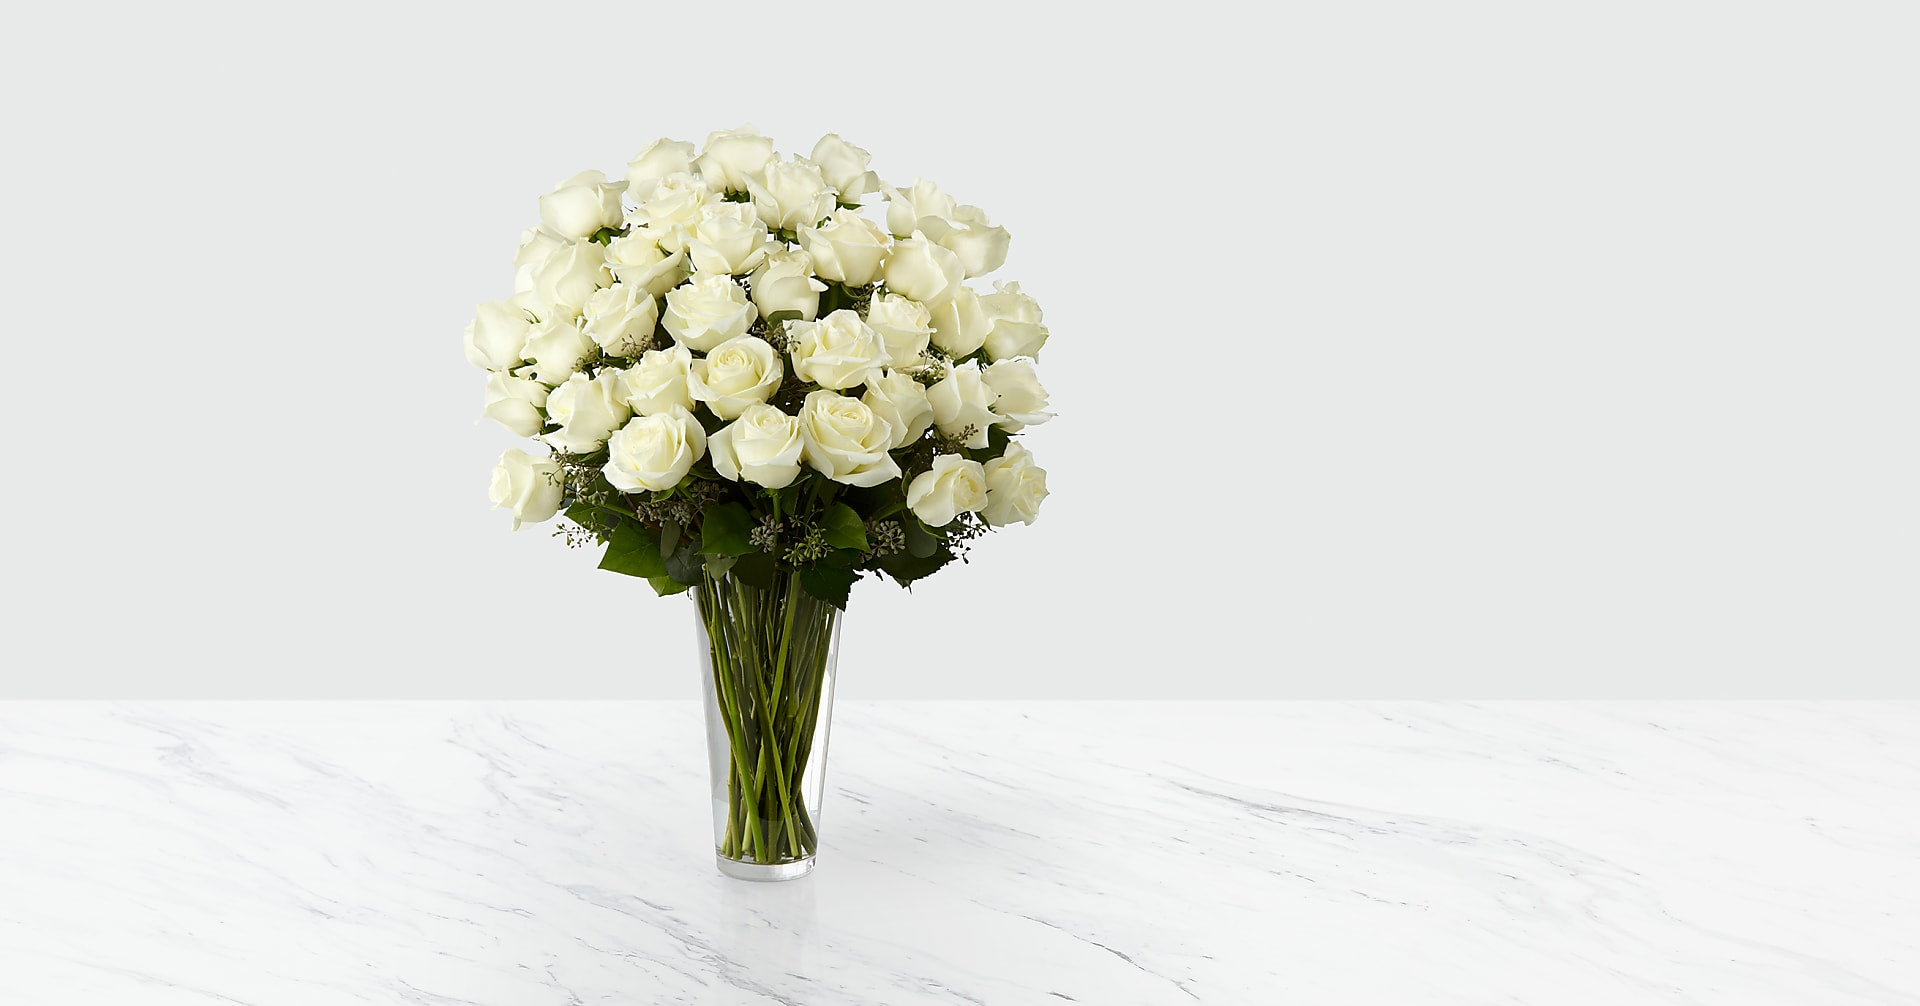 The White Rose Bouquet - 36 Stems - VASE INCLUDED - Image 1 Of 2